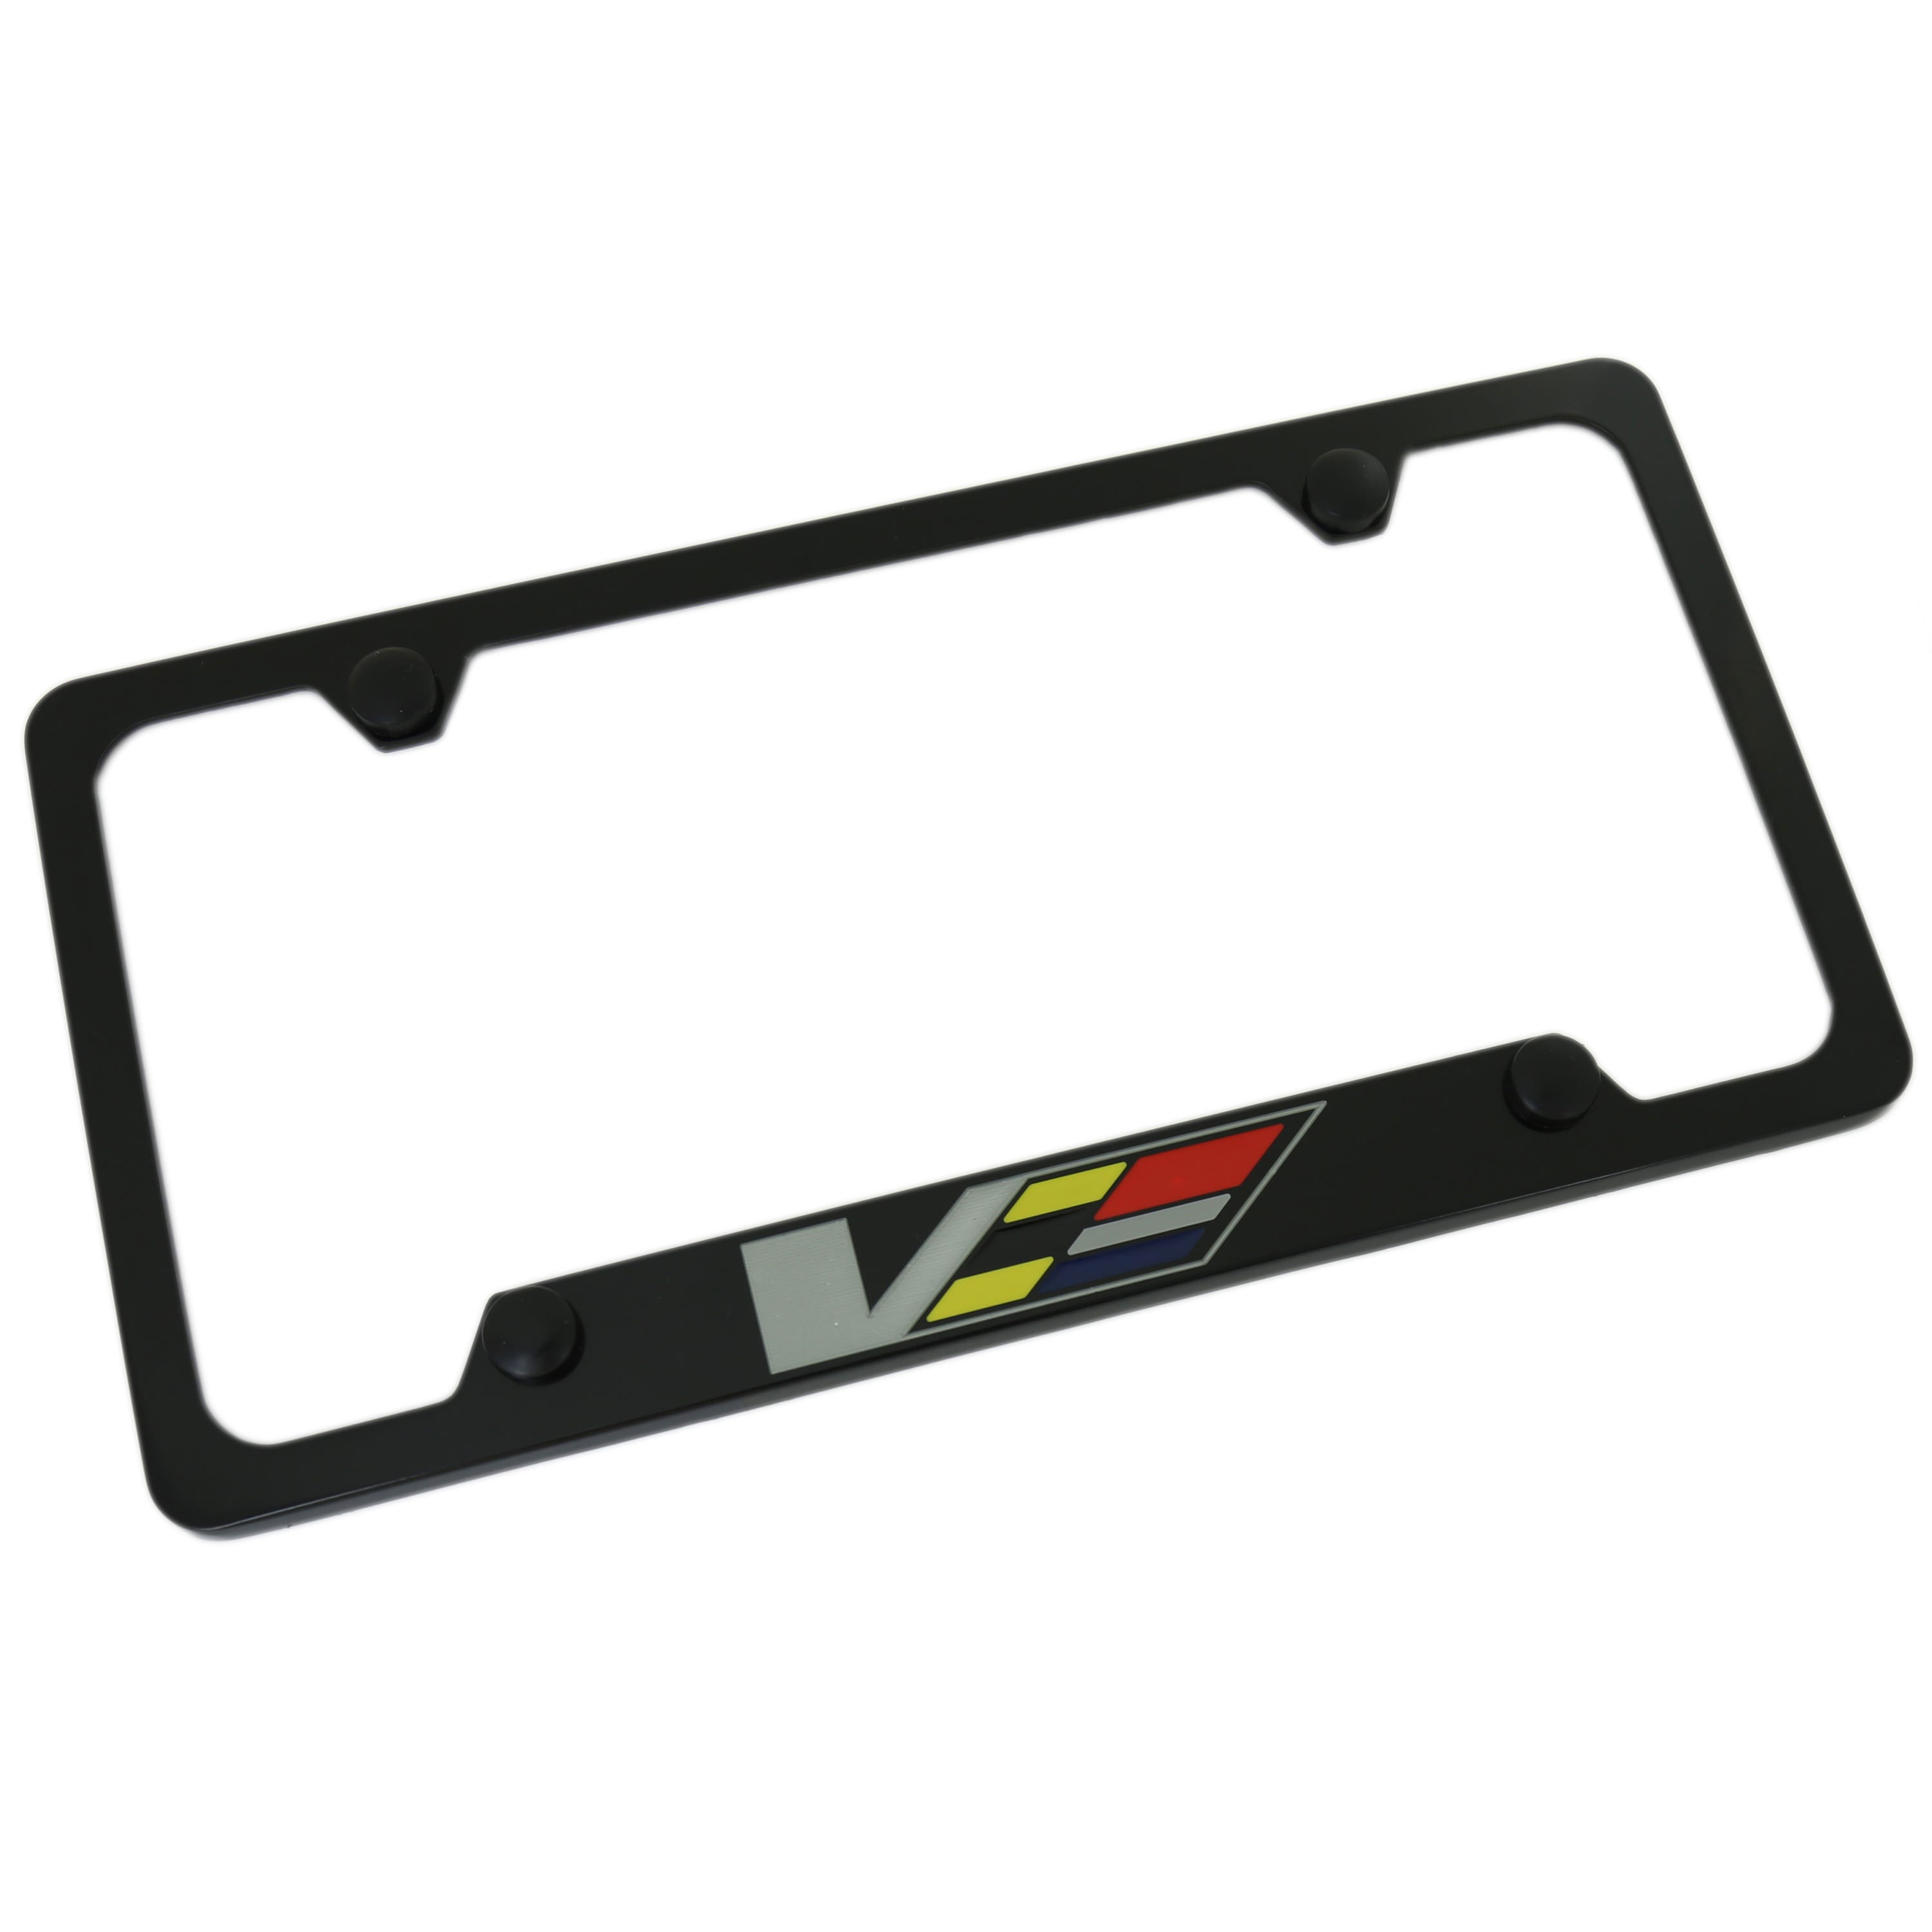 Cadillac V-Series License Plate Frame (Black) - Custom Werks